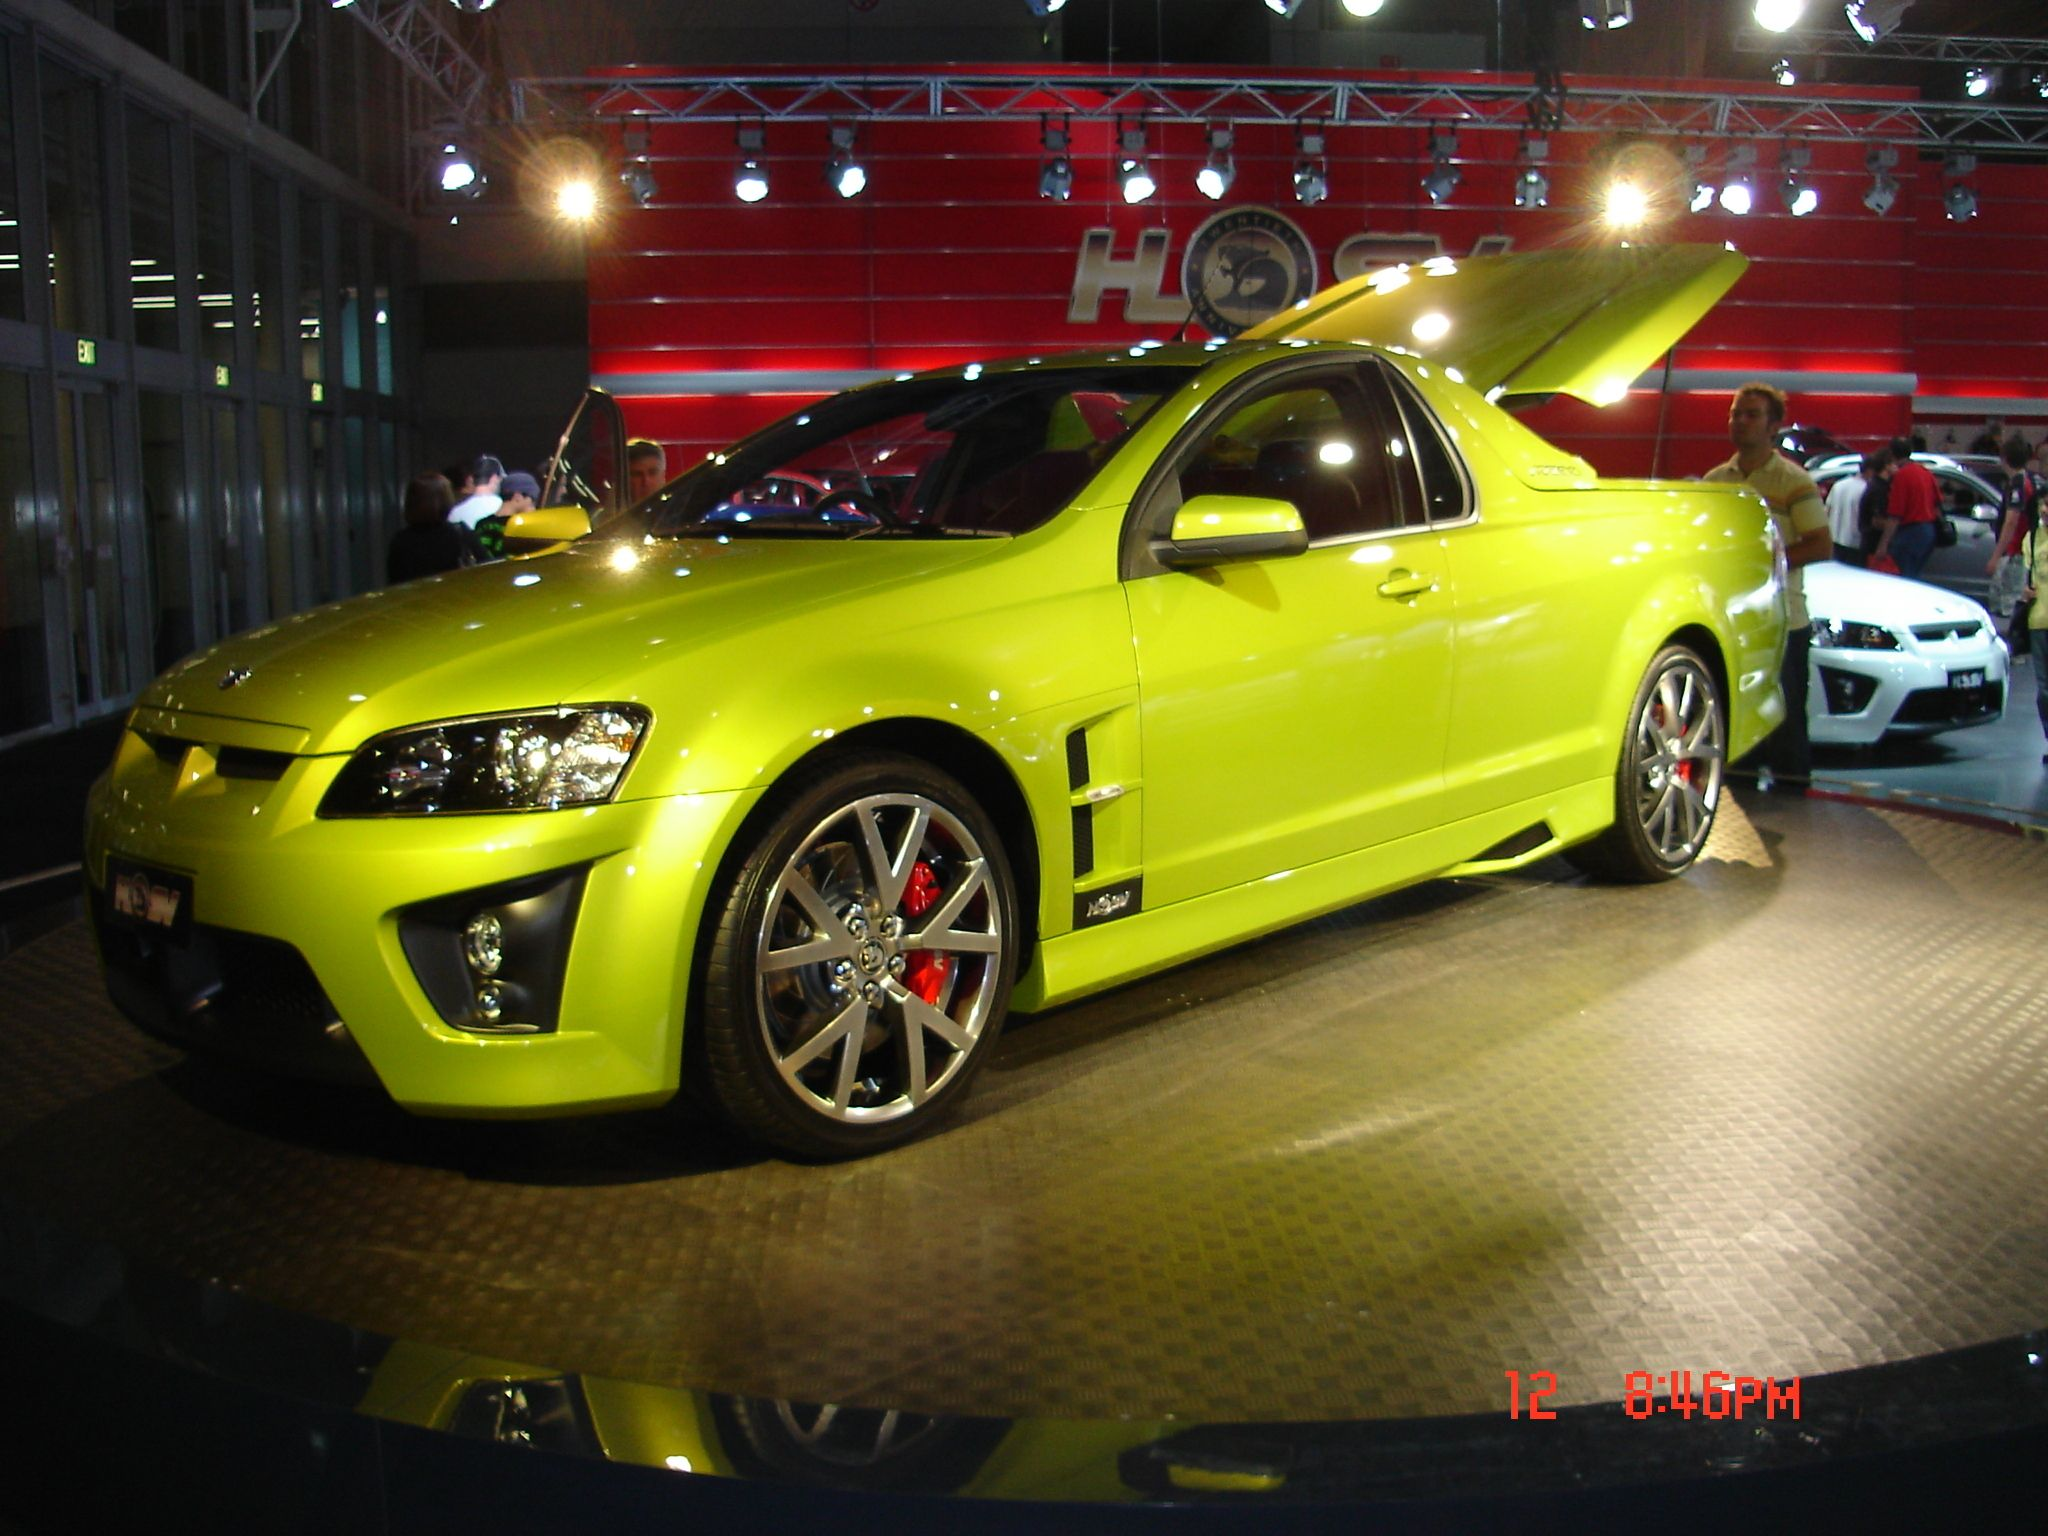 This weeks efforts saw the transformation of this e series hsv gts hsv maloo 317 specs photos videos and more on topworldauto vanachro Image collections